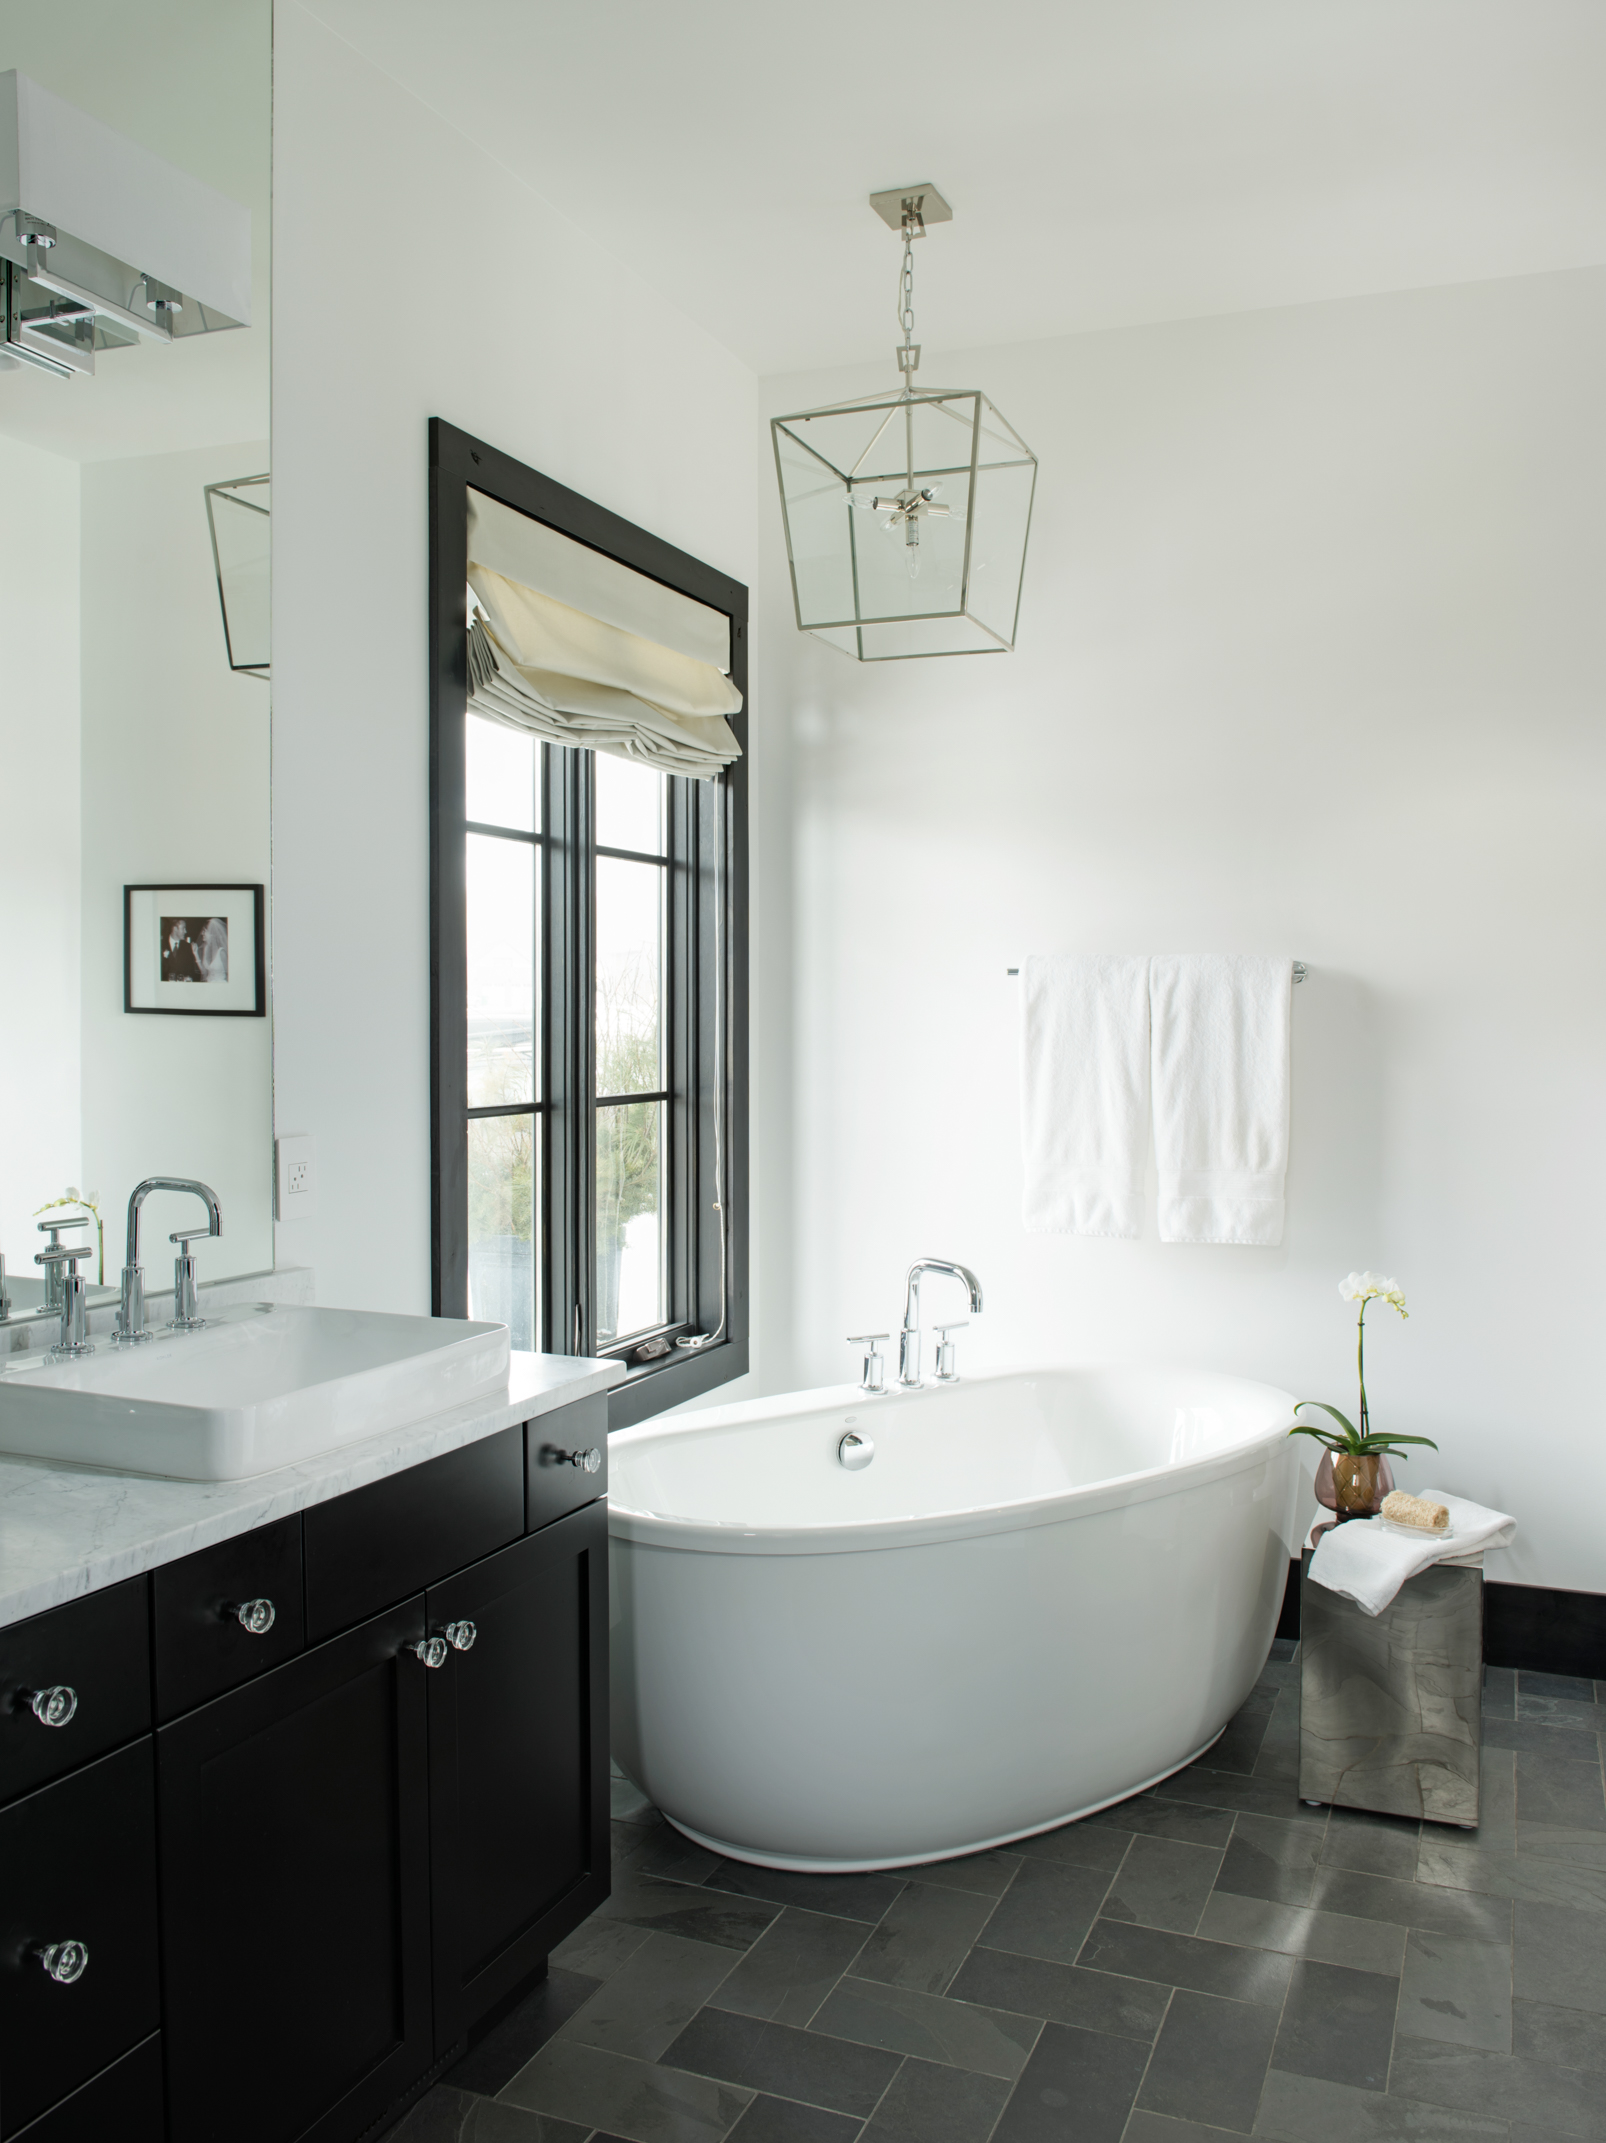 This bath is STUNNING! I love the simple and classic blacks & whites, and that tub!!